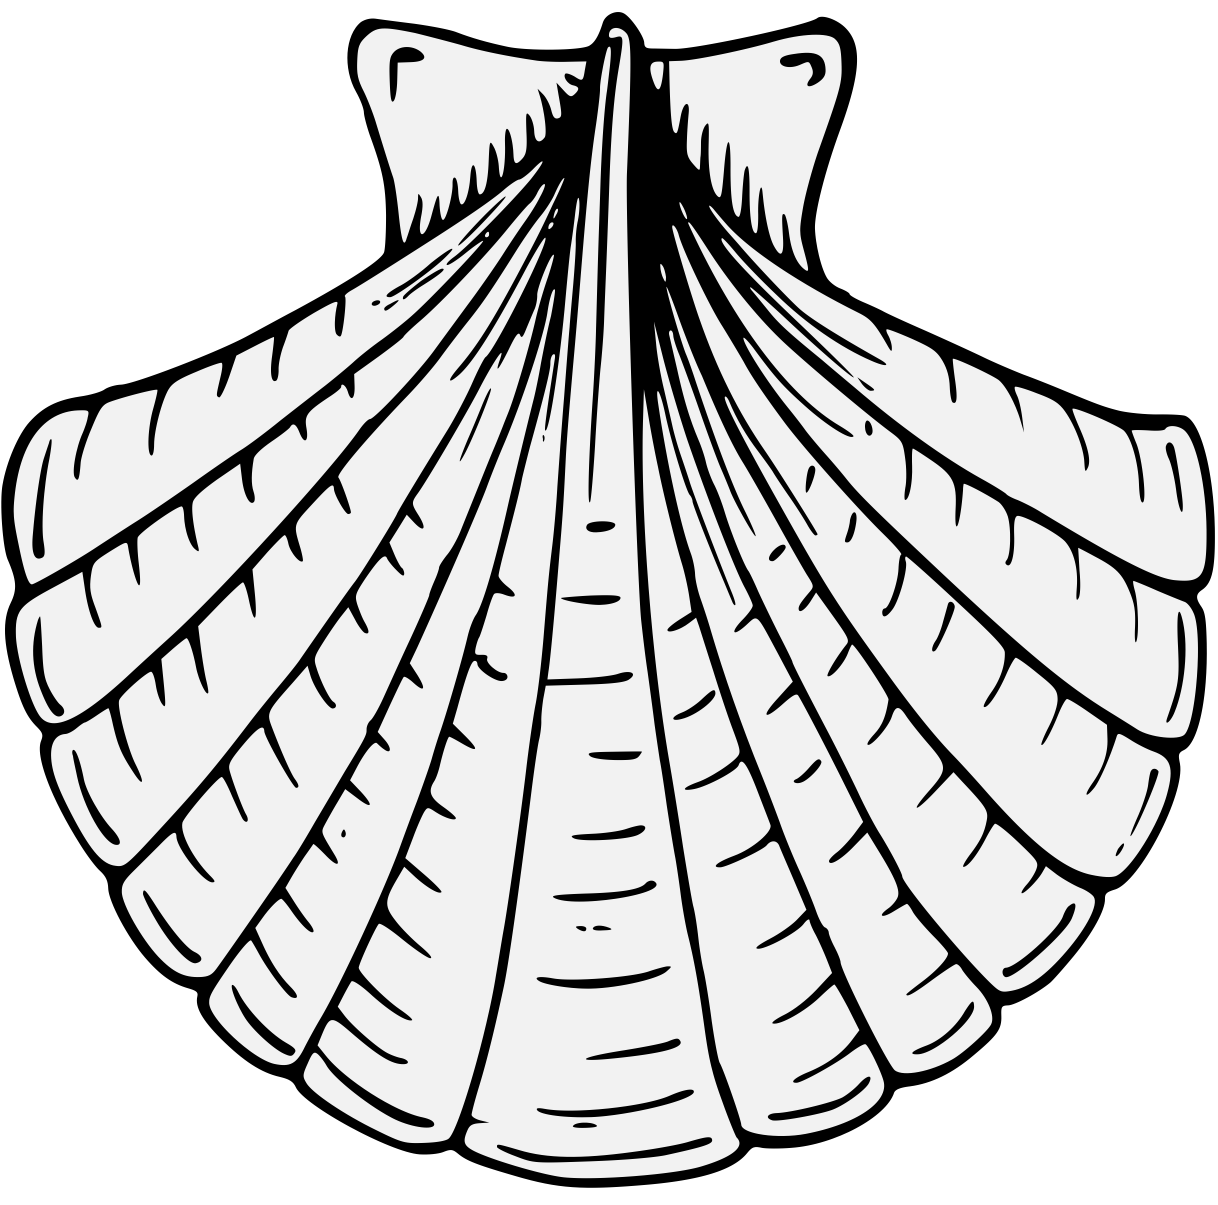 Shell clipart heraldry. Complete guide to line